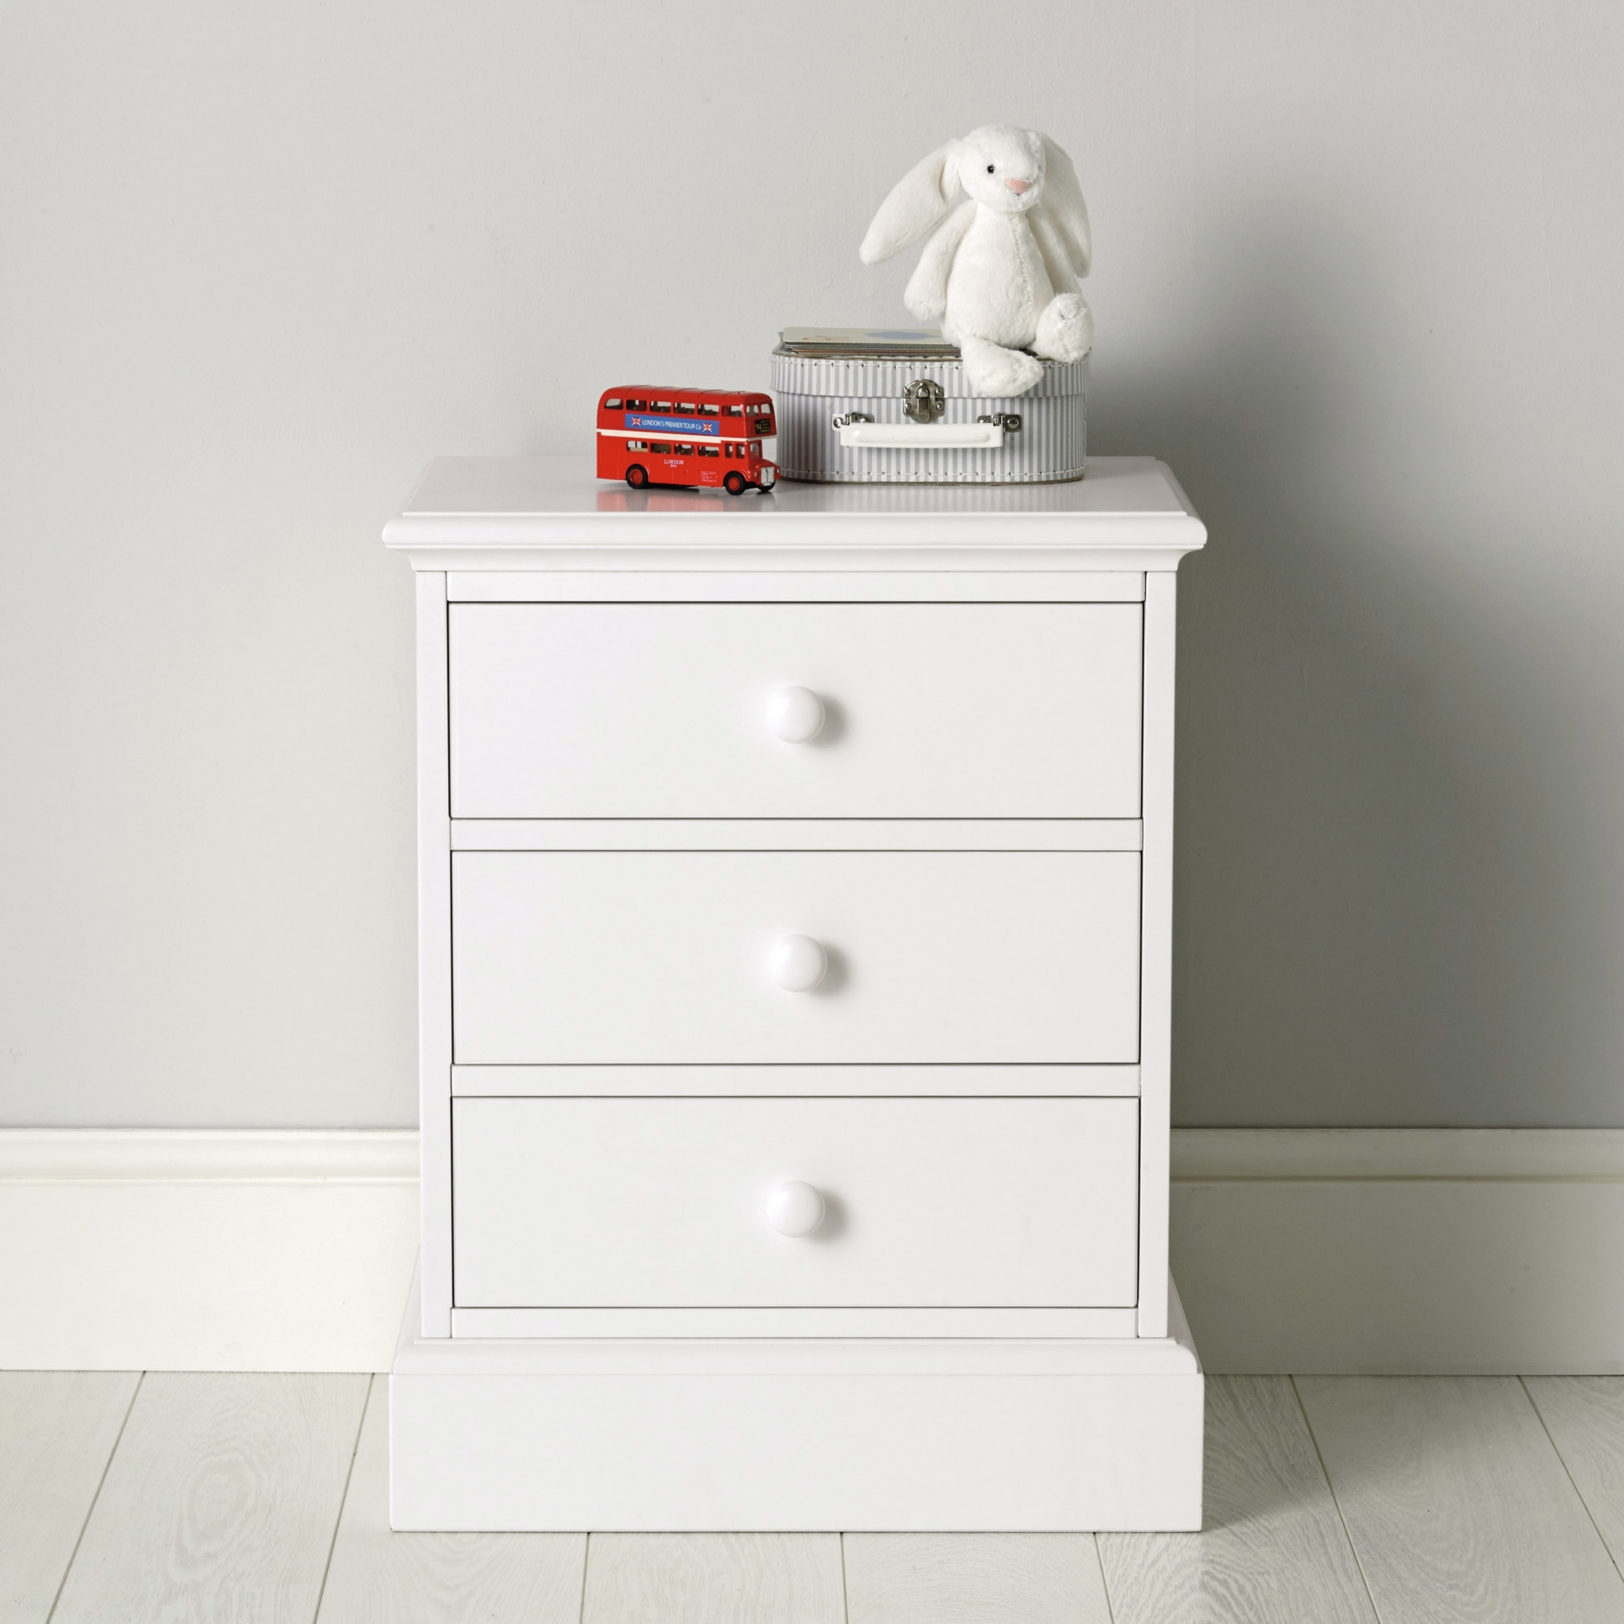 classic bedside table bedroom furniture furniture home the classic bedside table bedroom furniture furniture home the white company uk